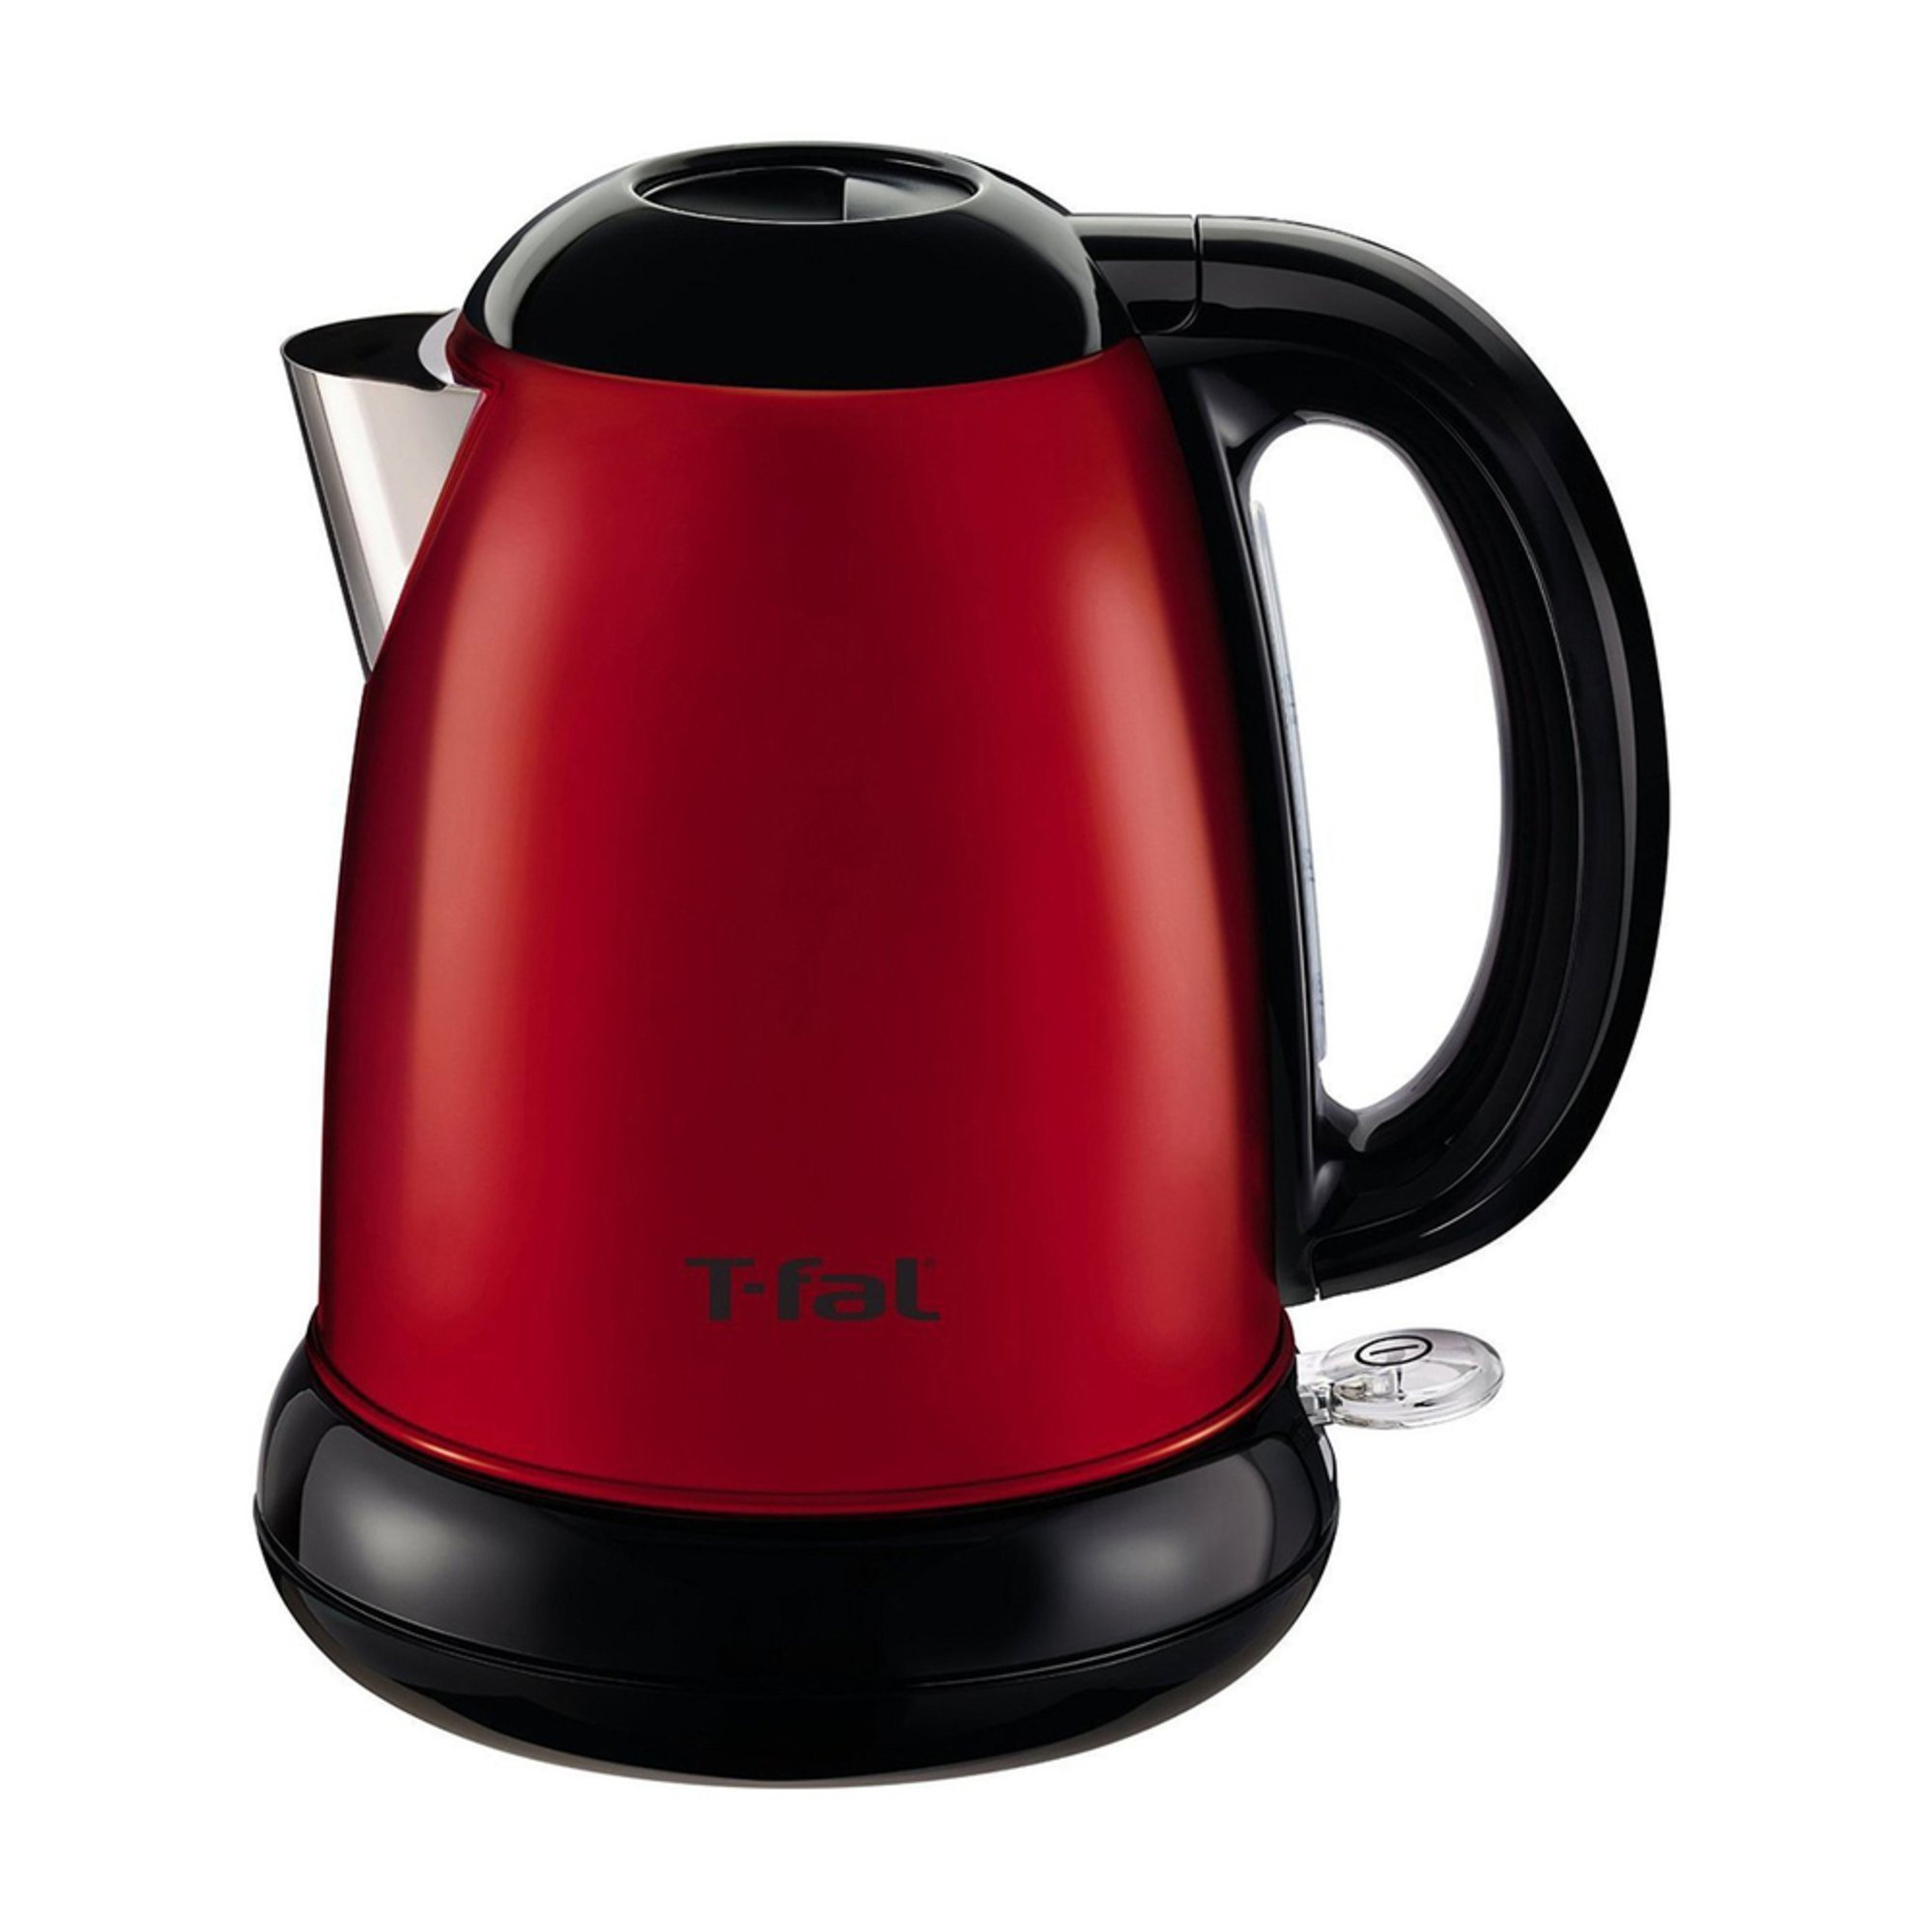 Coffee Maker Vs Kettle : T-fal 1.7-liter Red Metal Electric Kettle (ki1605us) Coffee Makers For The Home - Shop Your ...